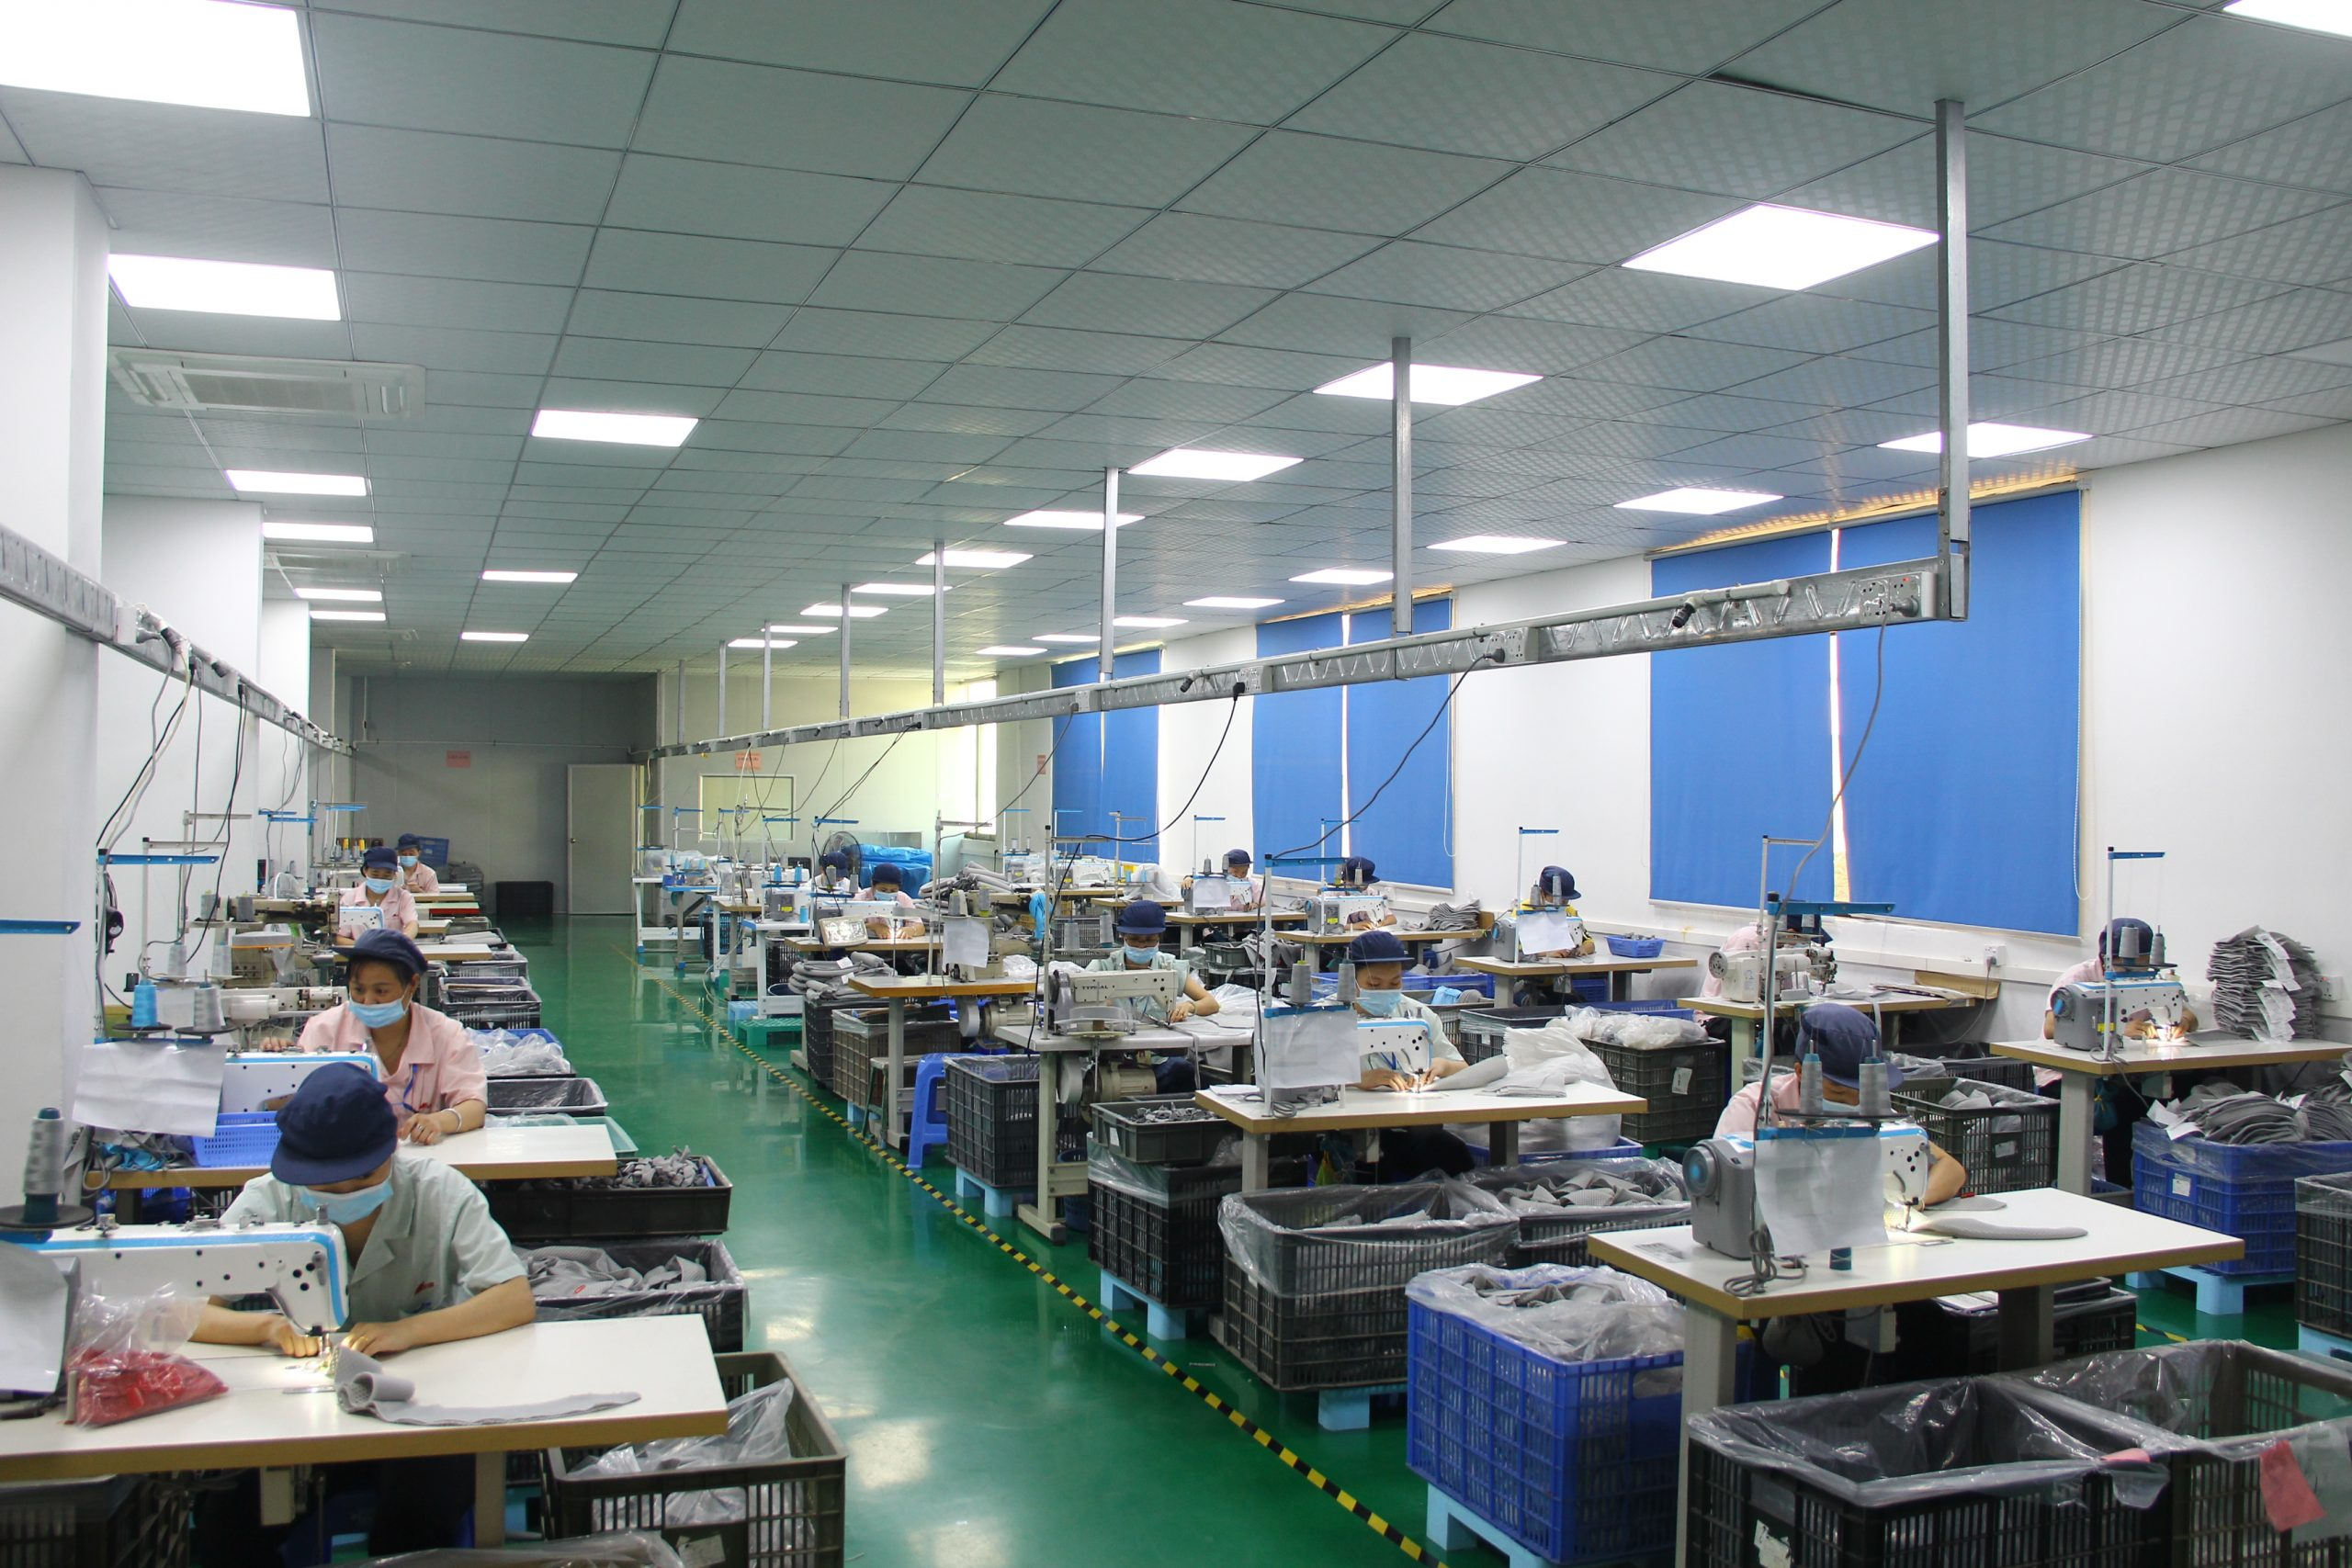 We have 40 sets of sewing machines in our sewing department.